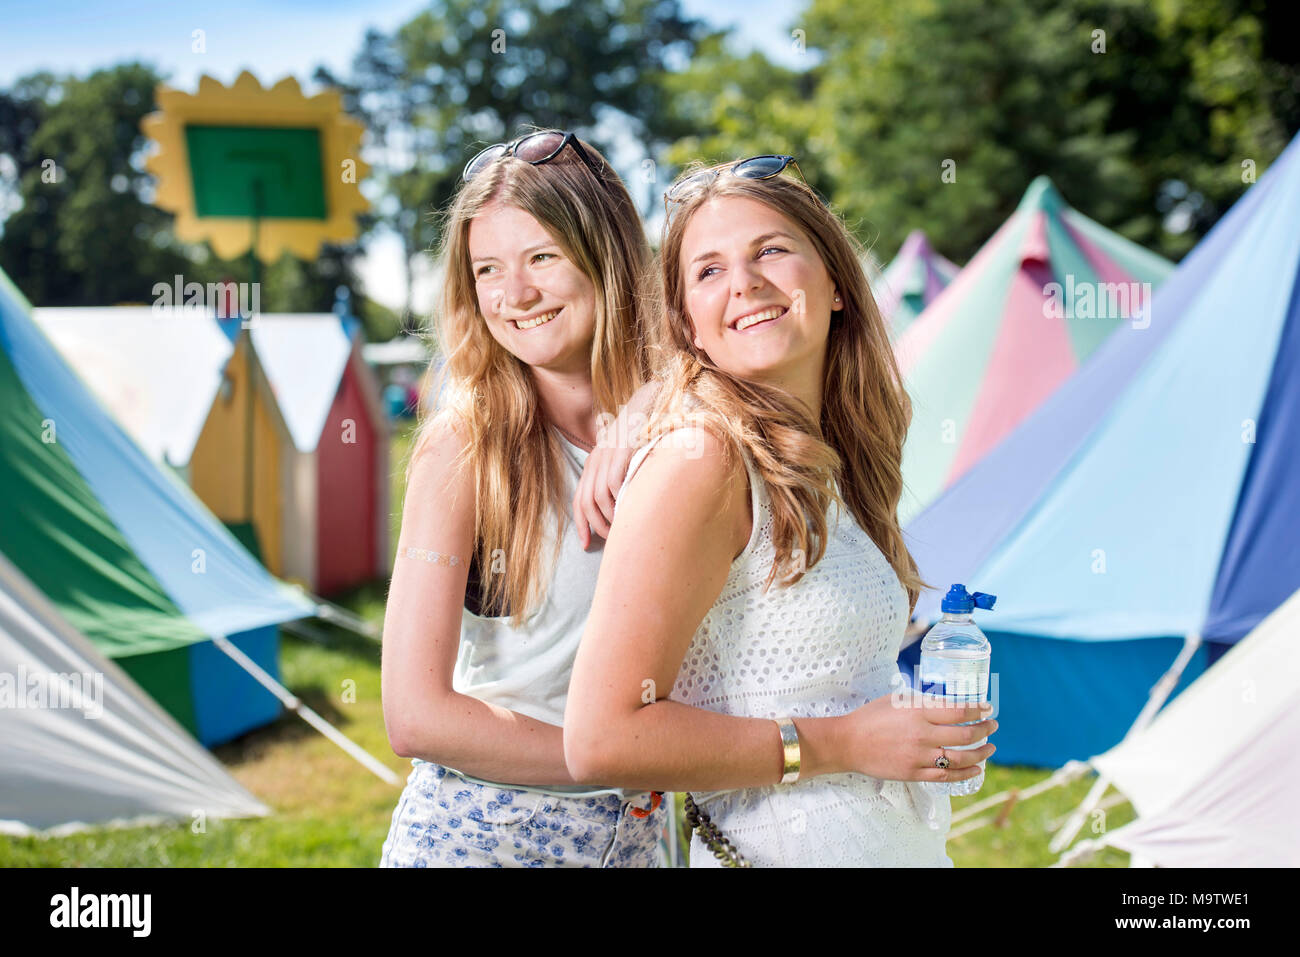 Girls in a 'Glamping' area at the Cornbury Music Festival UK - Stock Image